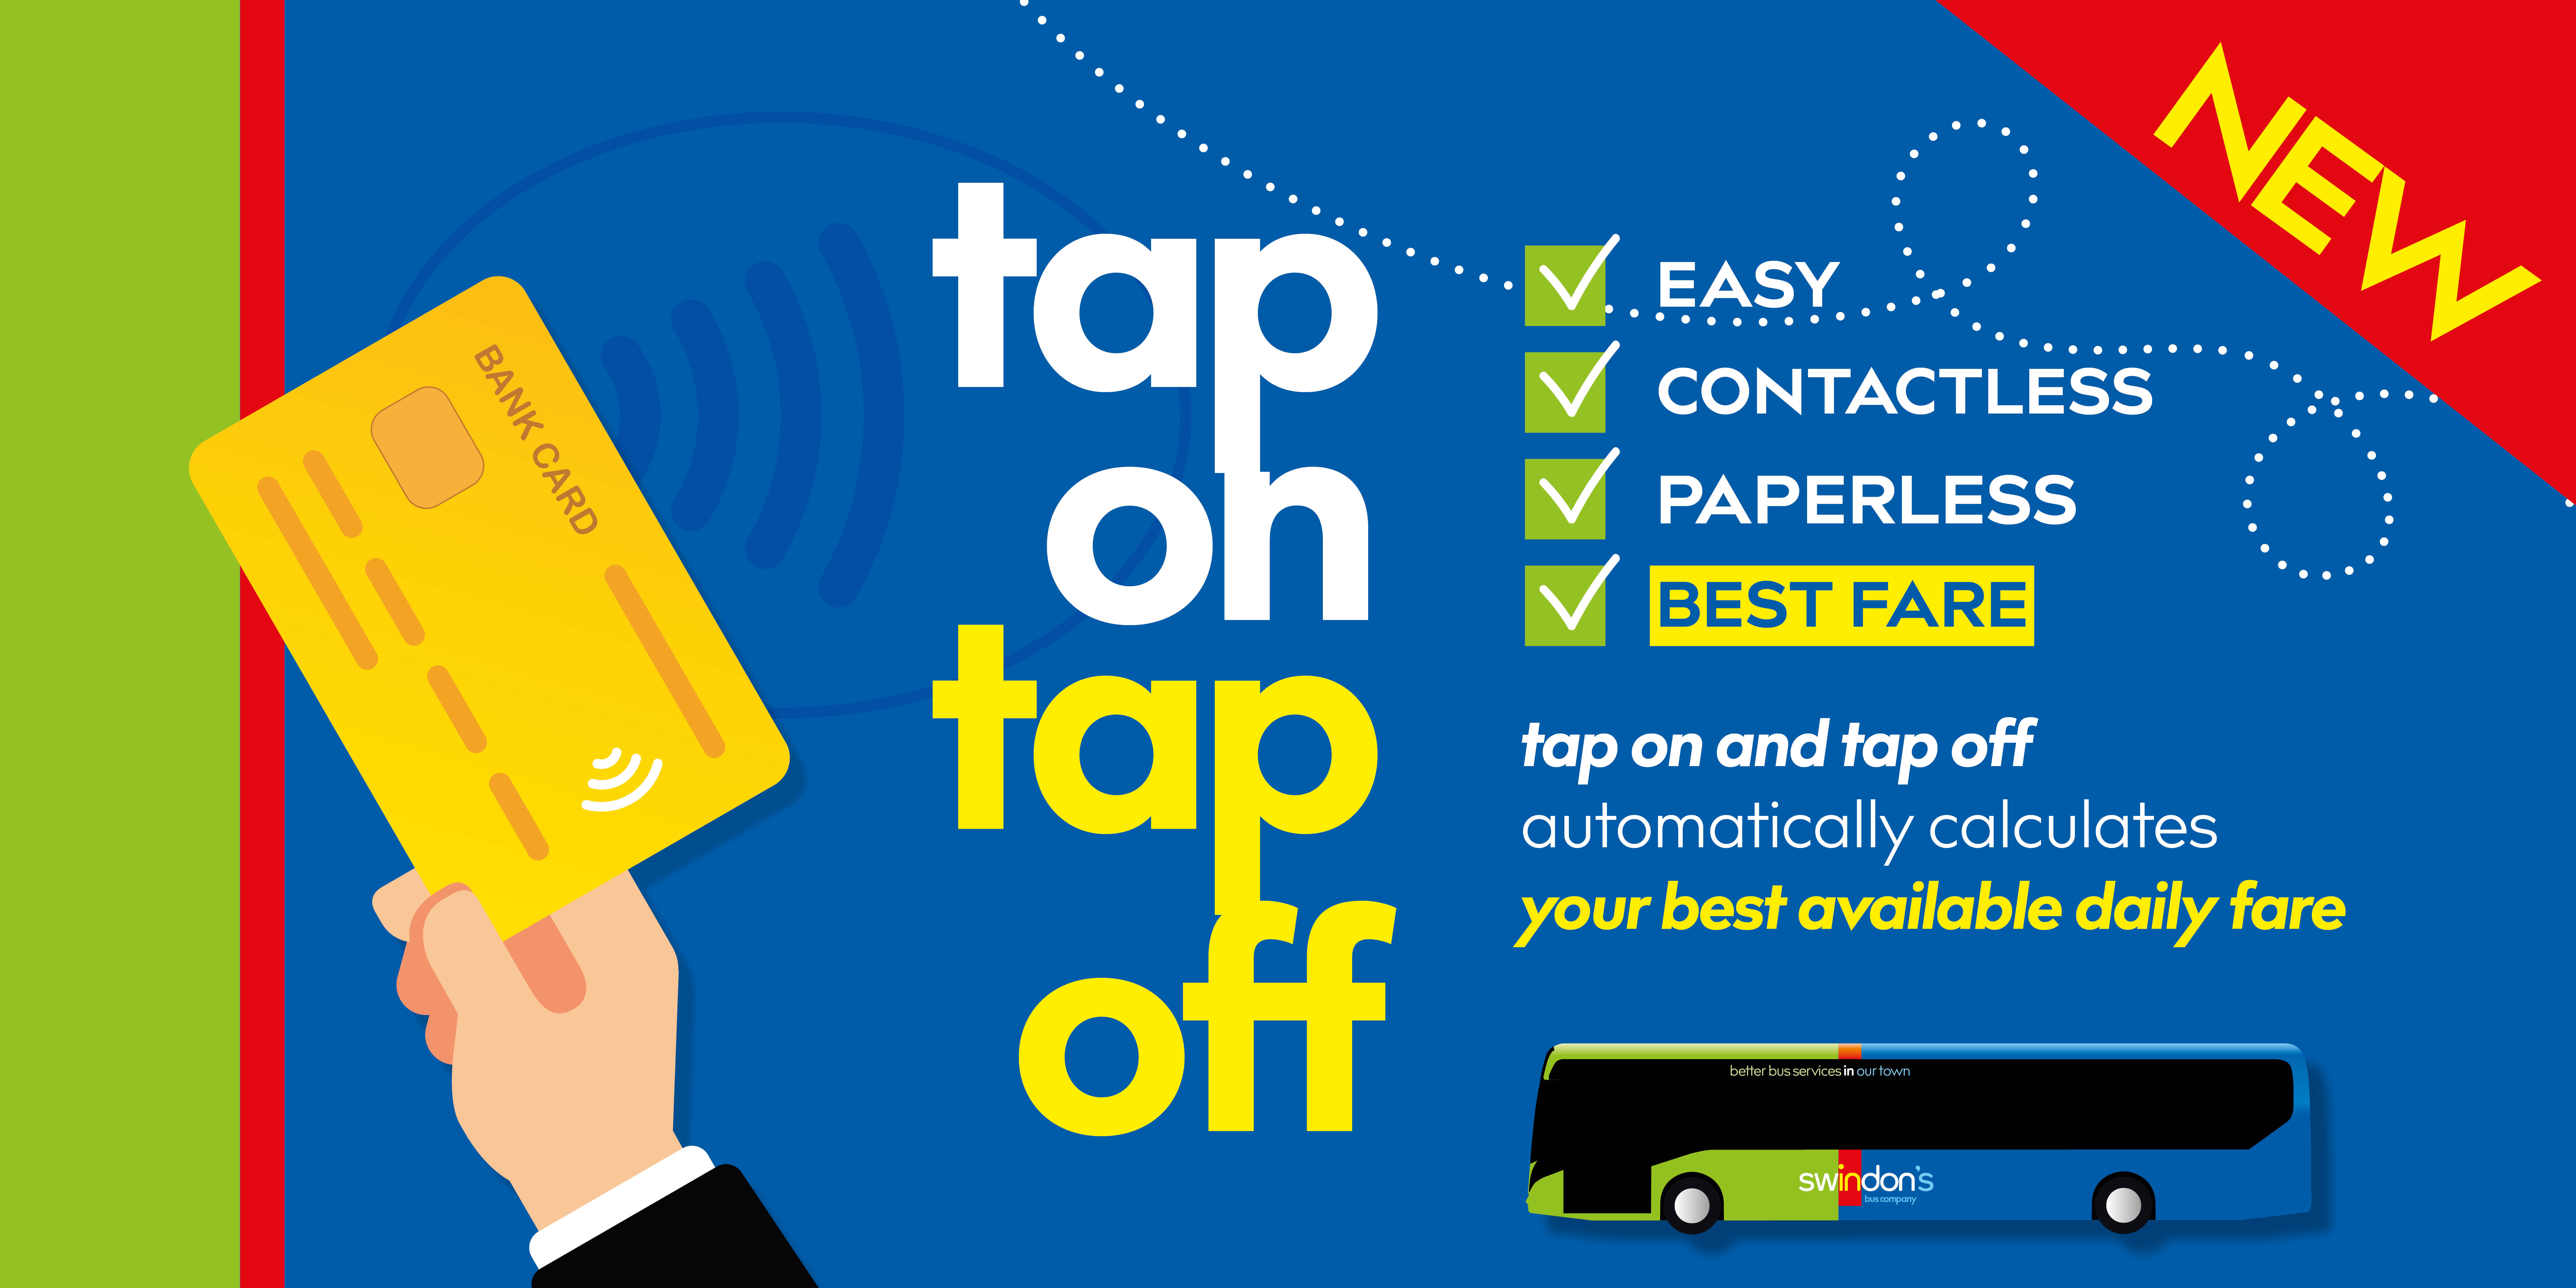 Swindon's Bus Company - Tap On Tap Off